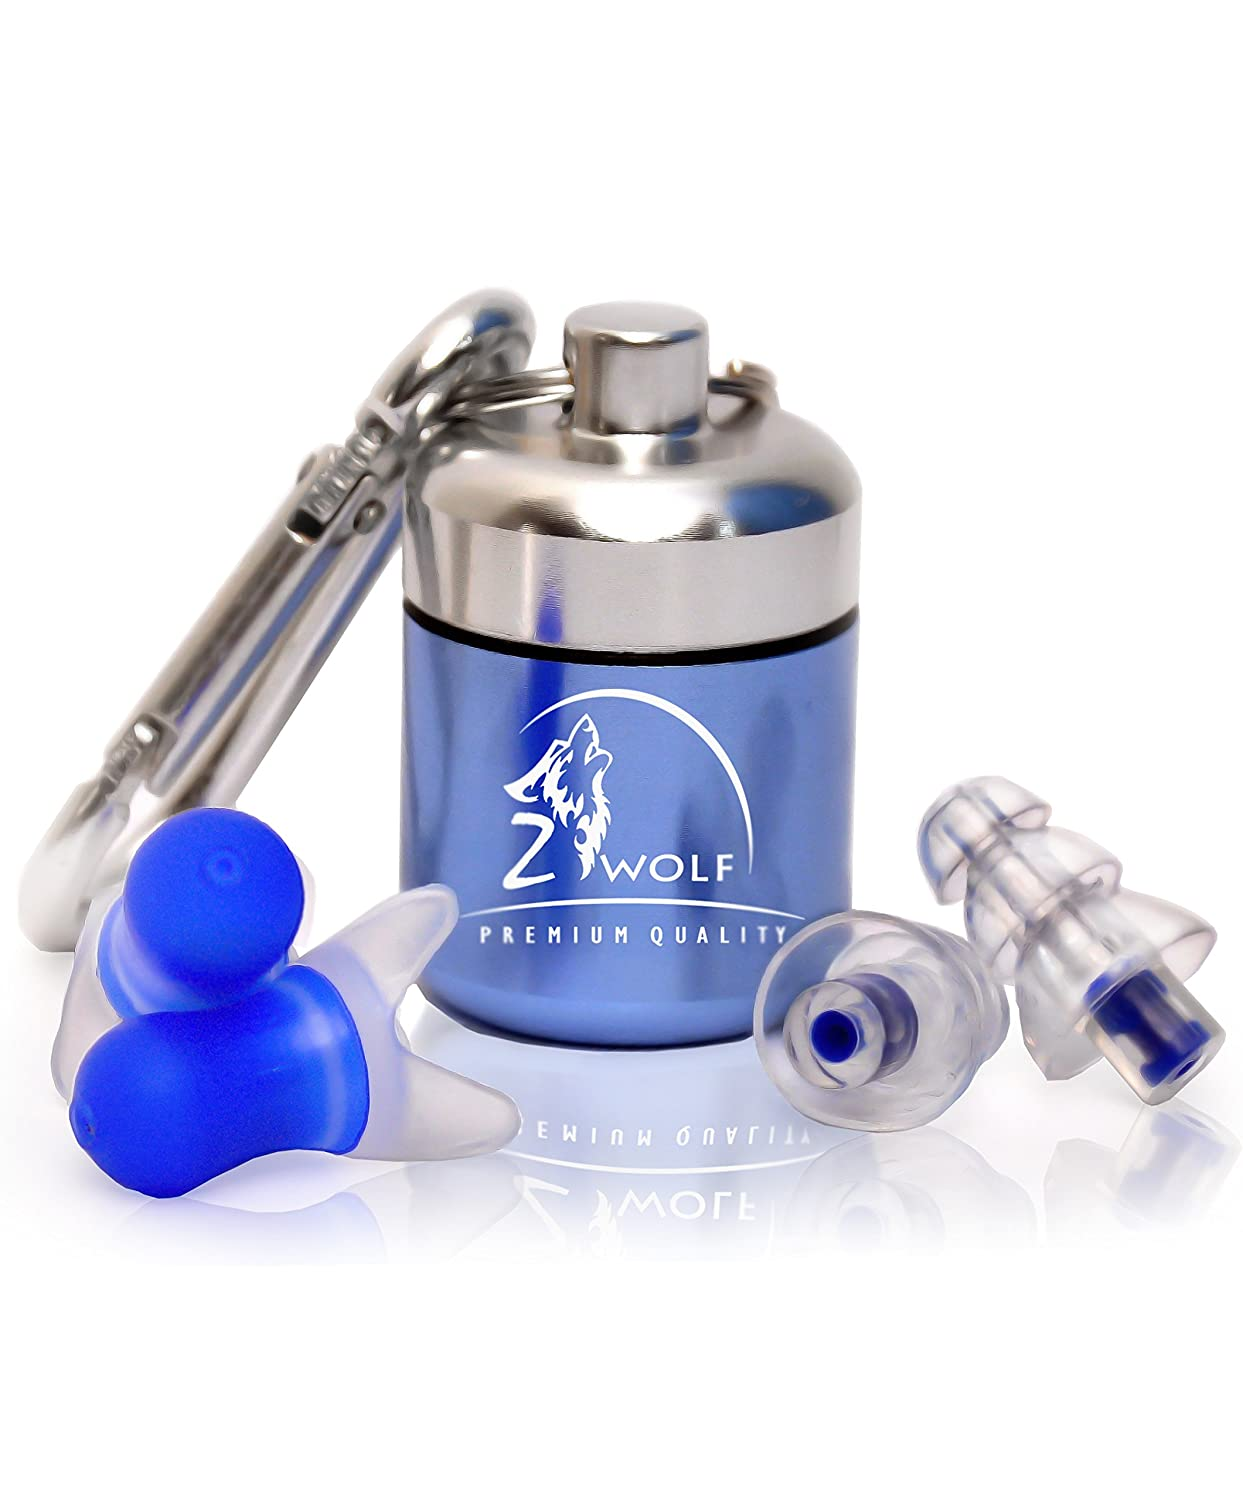 High Fidelity Reusable Ear Plugs With Filter By Zwolf Matador Travel Earplugs Kit Noise Cancelling Set Hearing Protection For Professional Musicians Sleeping